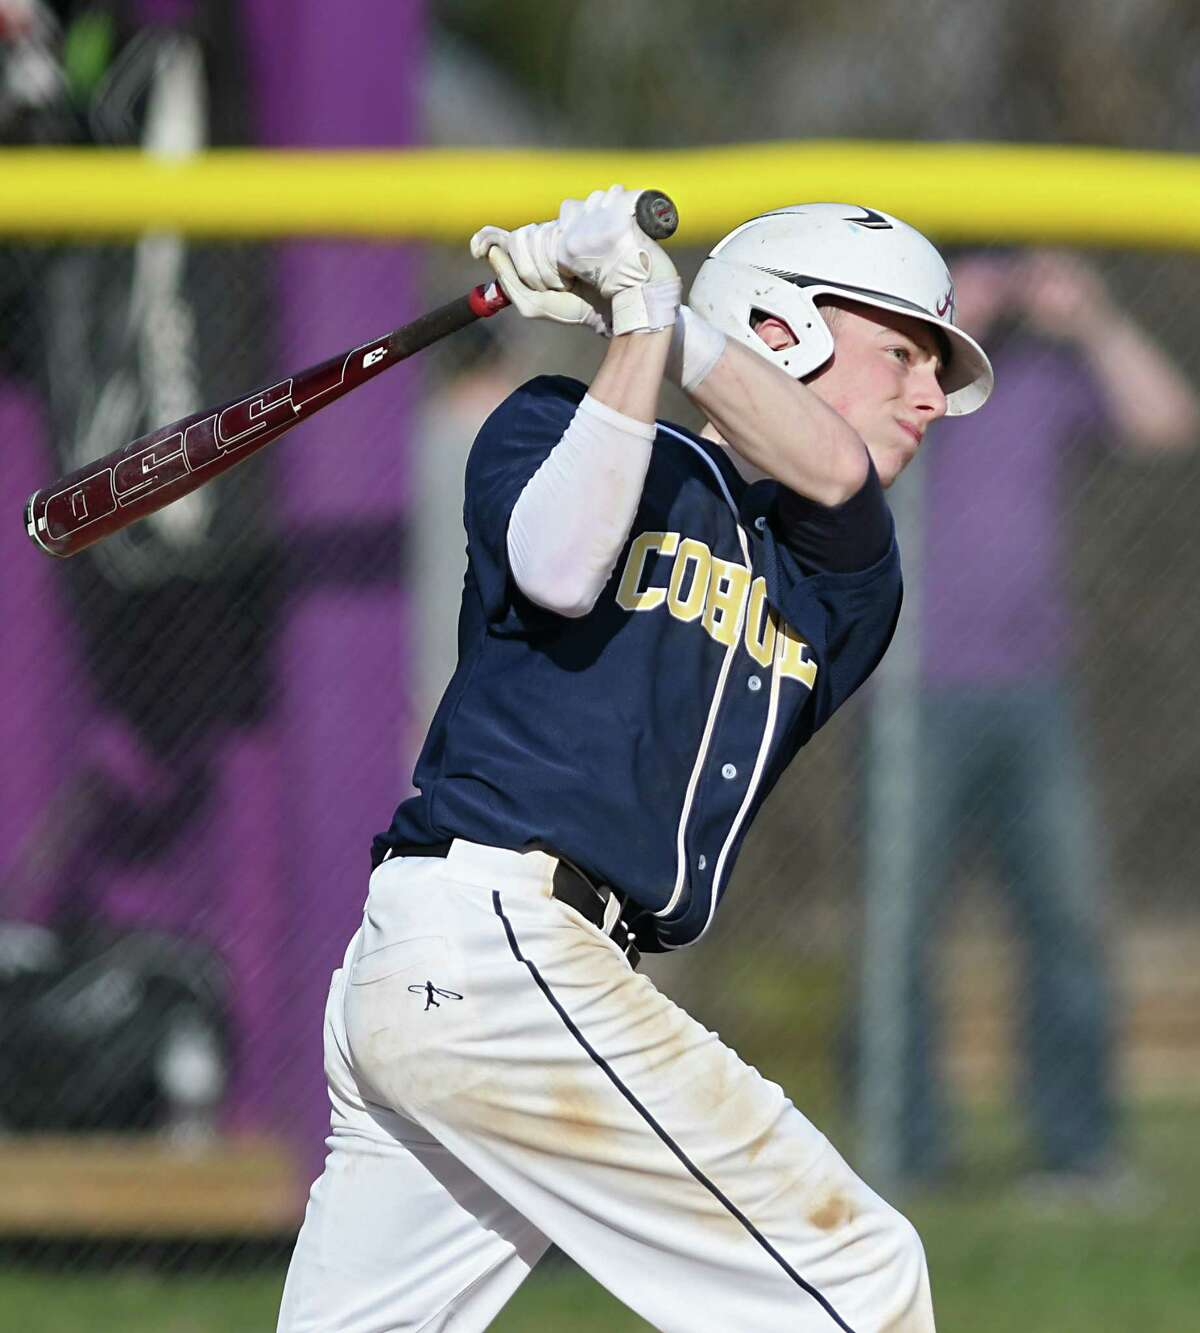 Cohoes shortstop Derek Becker watches his ball travel to the outfield during a baseball game against Voorheesville on Monday, April 10, 2017 in Voorheesville, N.Y. (Lori Van Buren / Times Union)